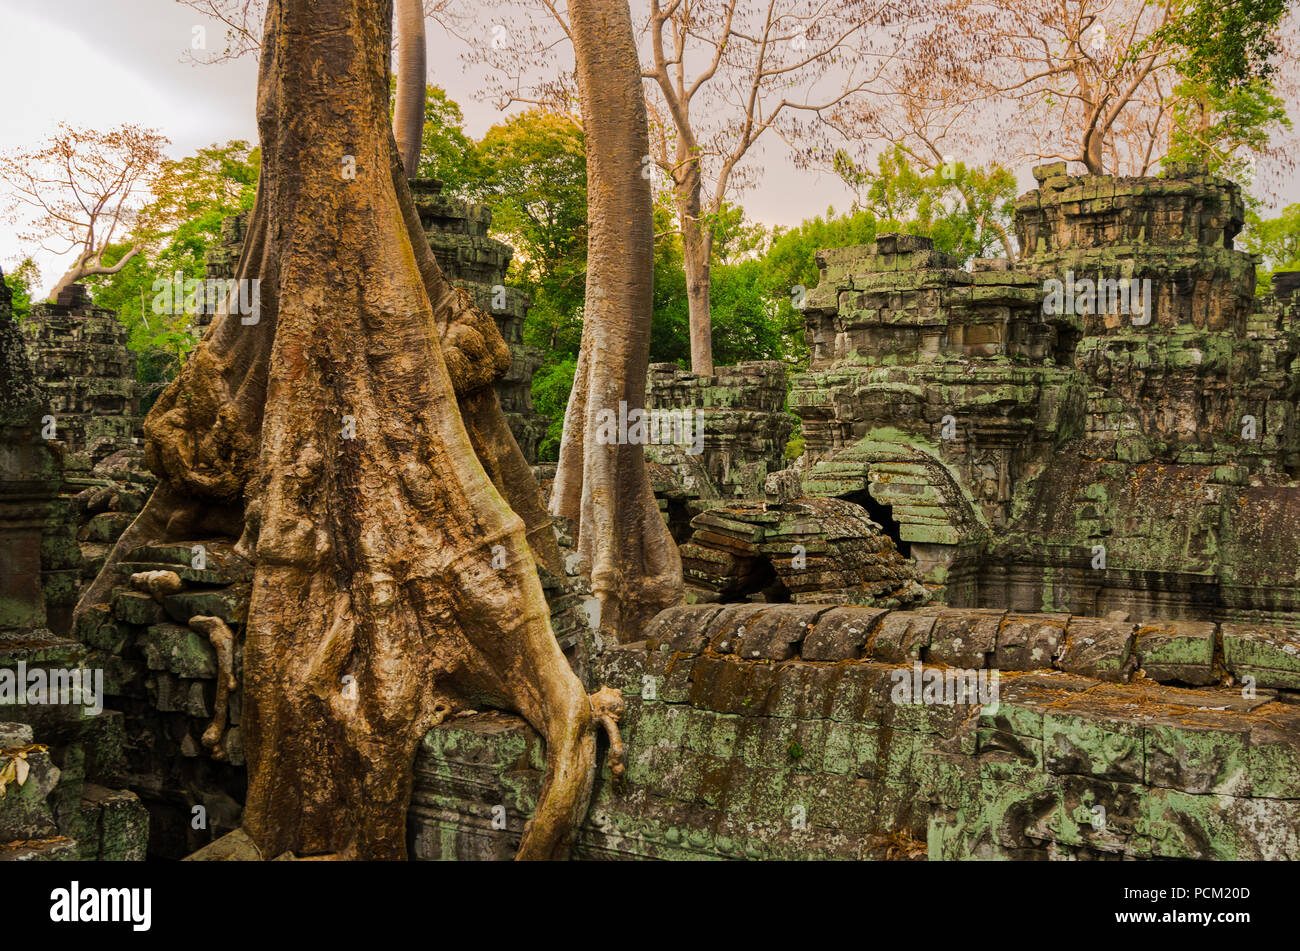 Les arbres de la jungle ont envahi les toits de Ta Phrom temple à Angkor, au Cambodge. Photo Stock